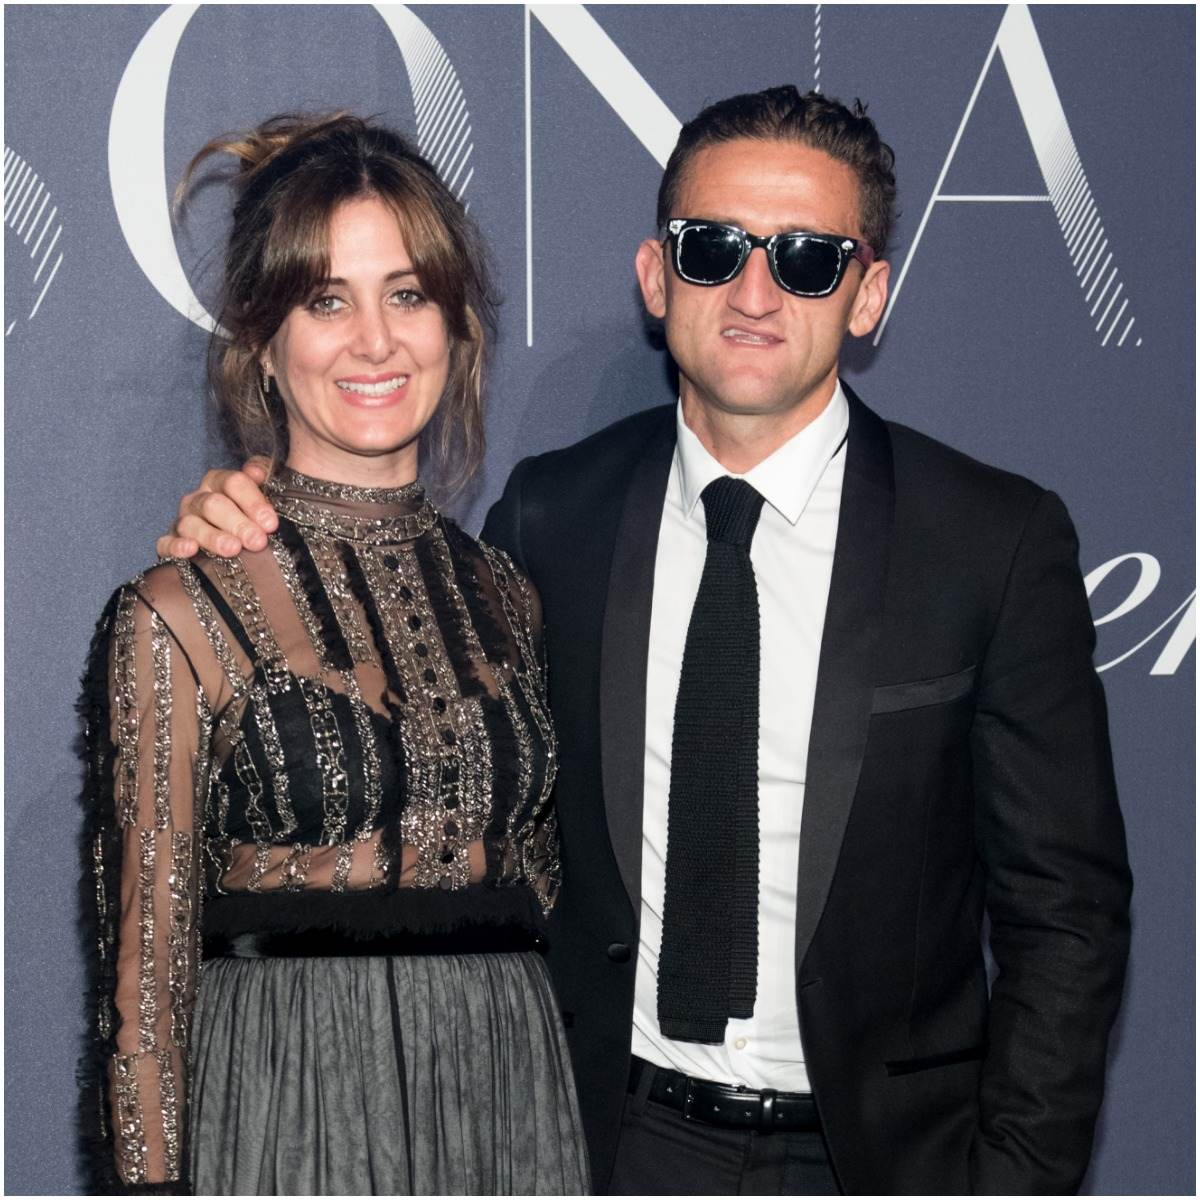 Casey Neistat and his wife Candice Pool